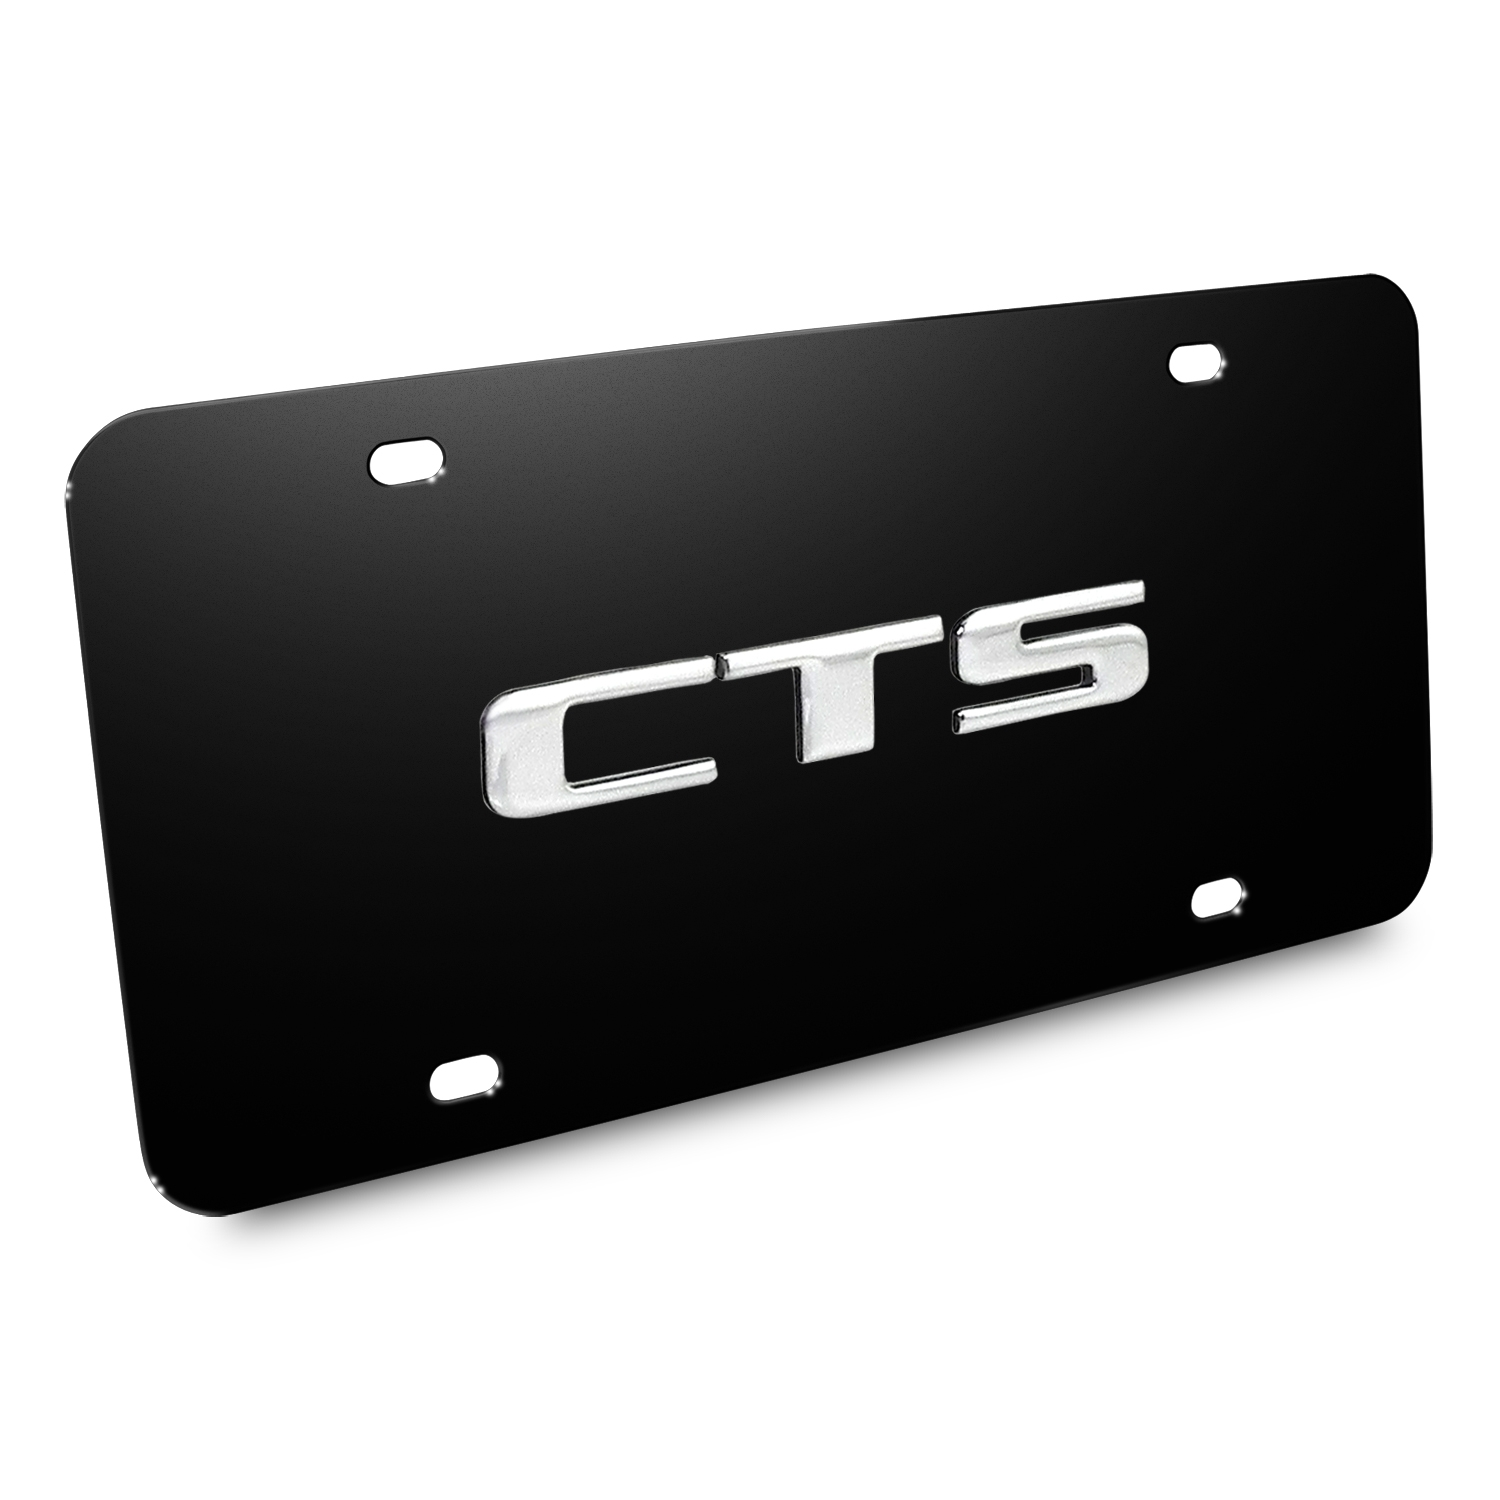 Cadillac CTS Name 3D Logo Black Stainless Steel License Plate